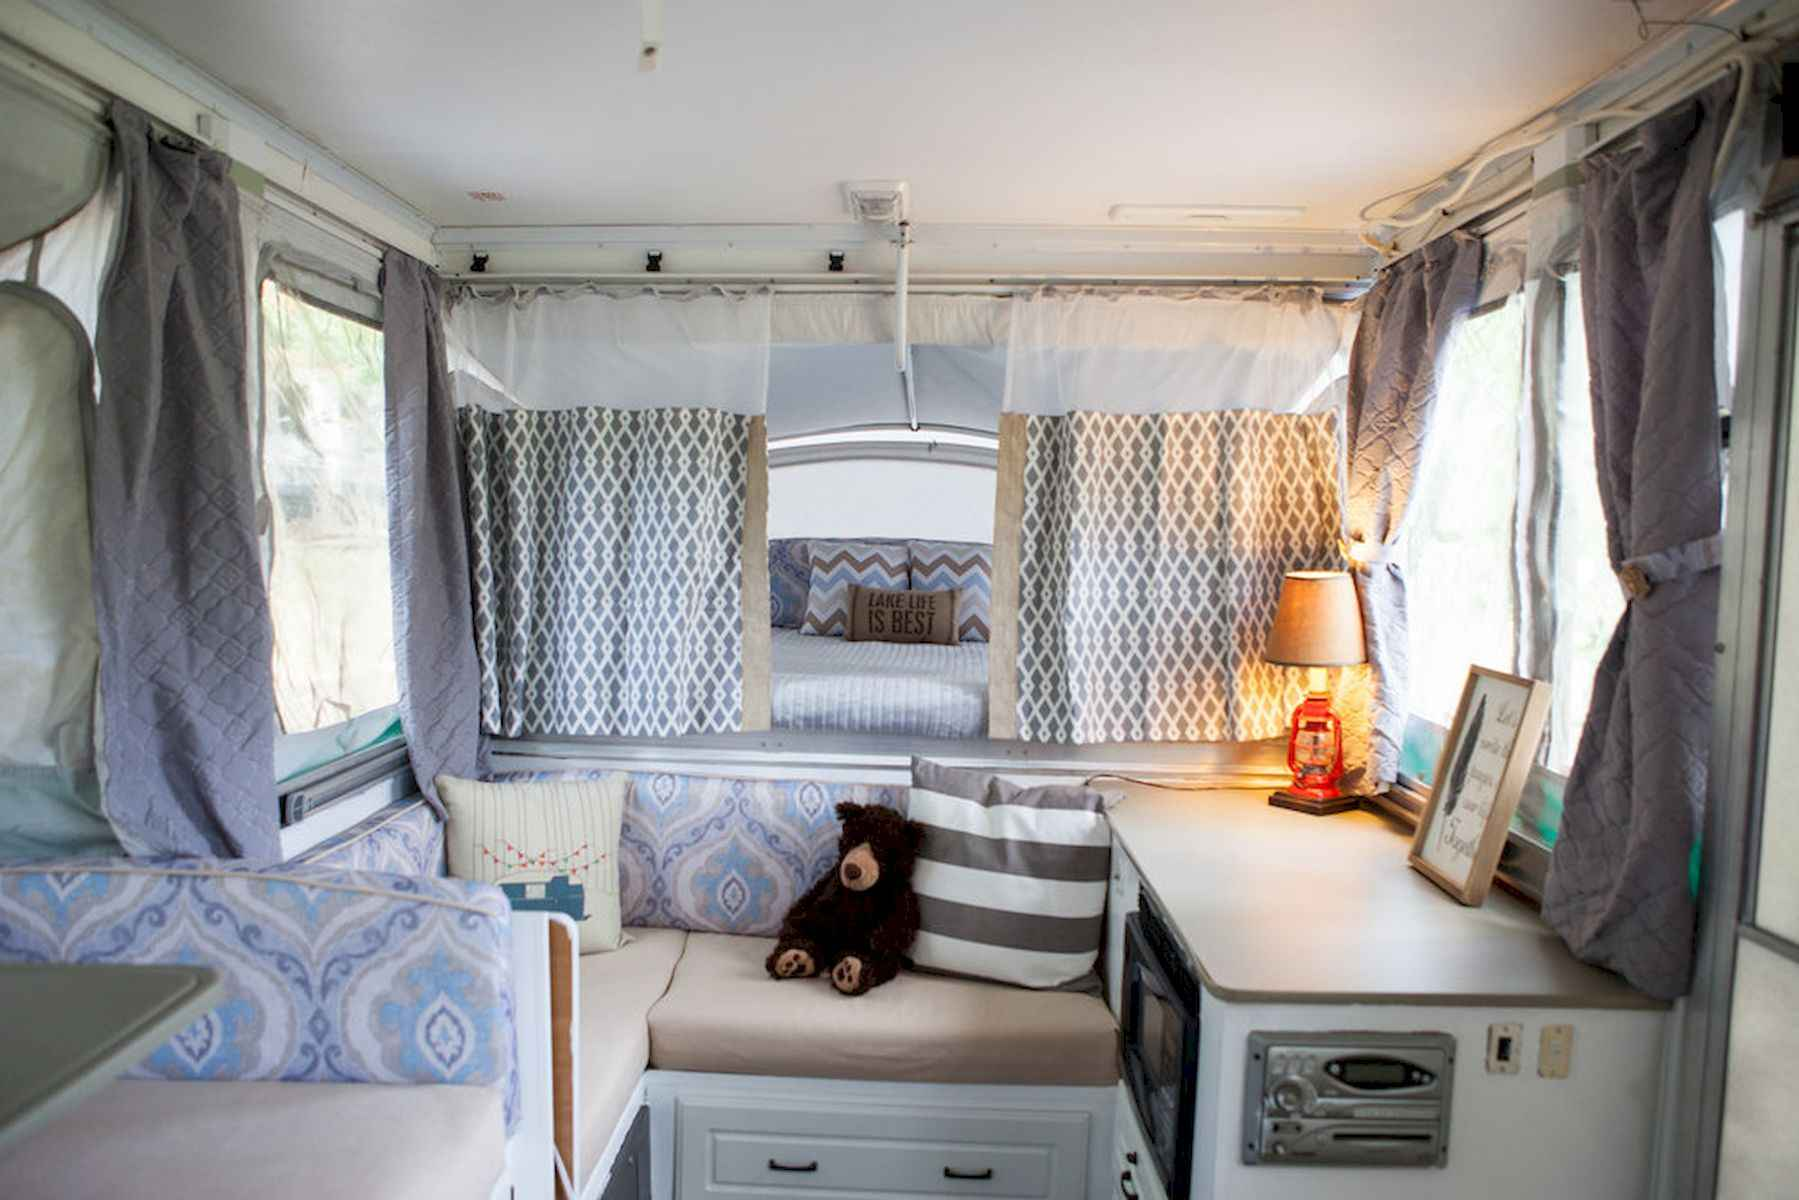 70 Stunning RV Living Camper Room Ideas Decorations Make Your Summer Awesome (62)